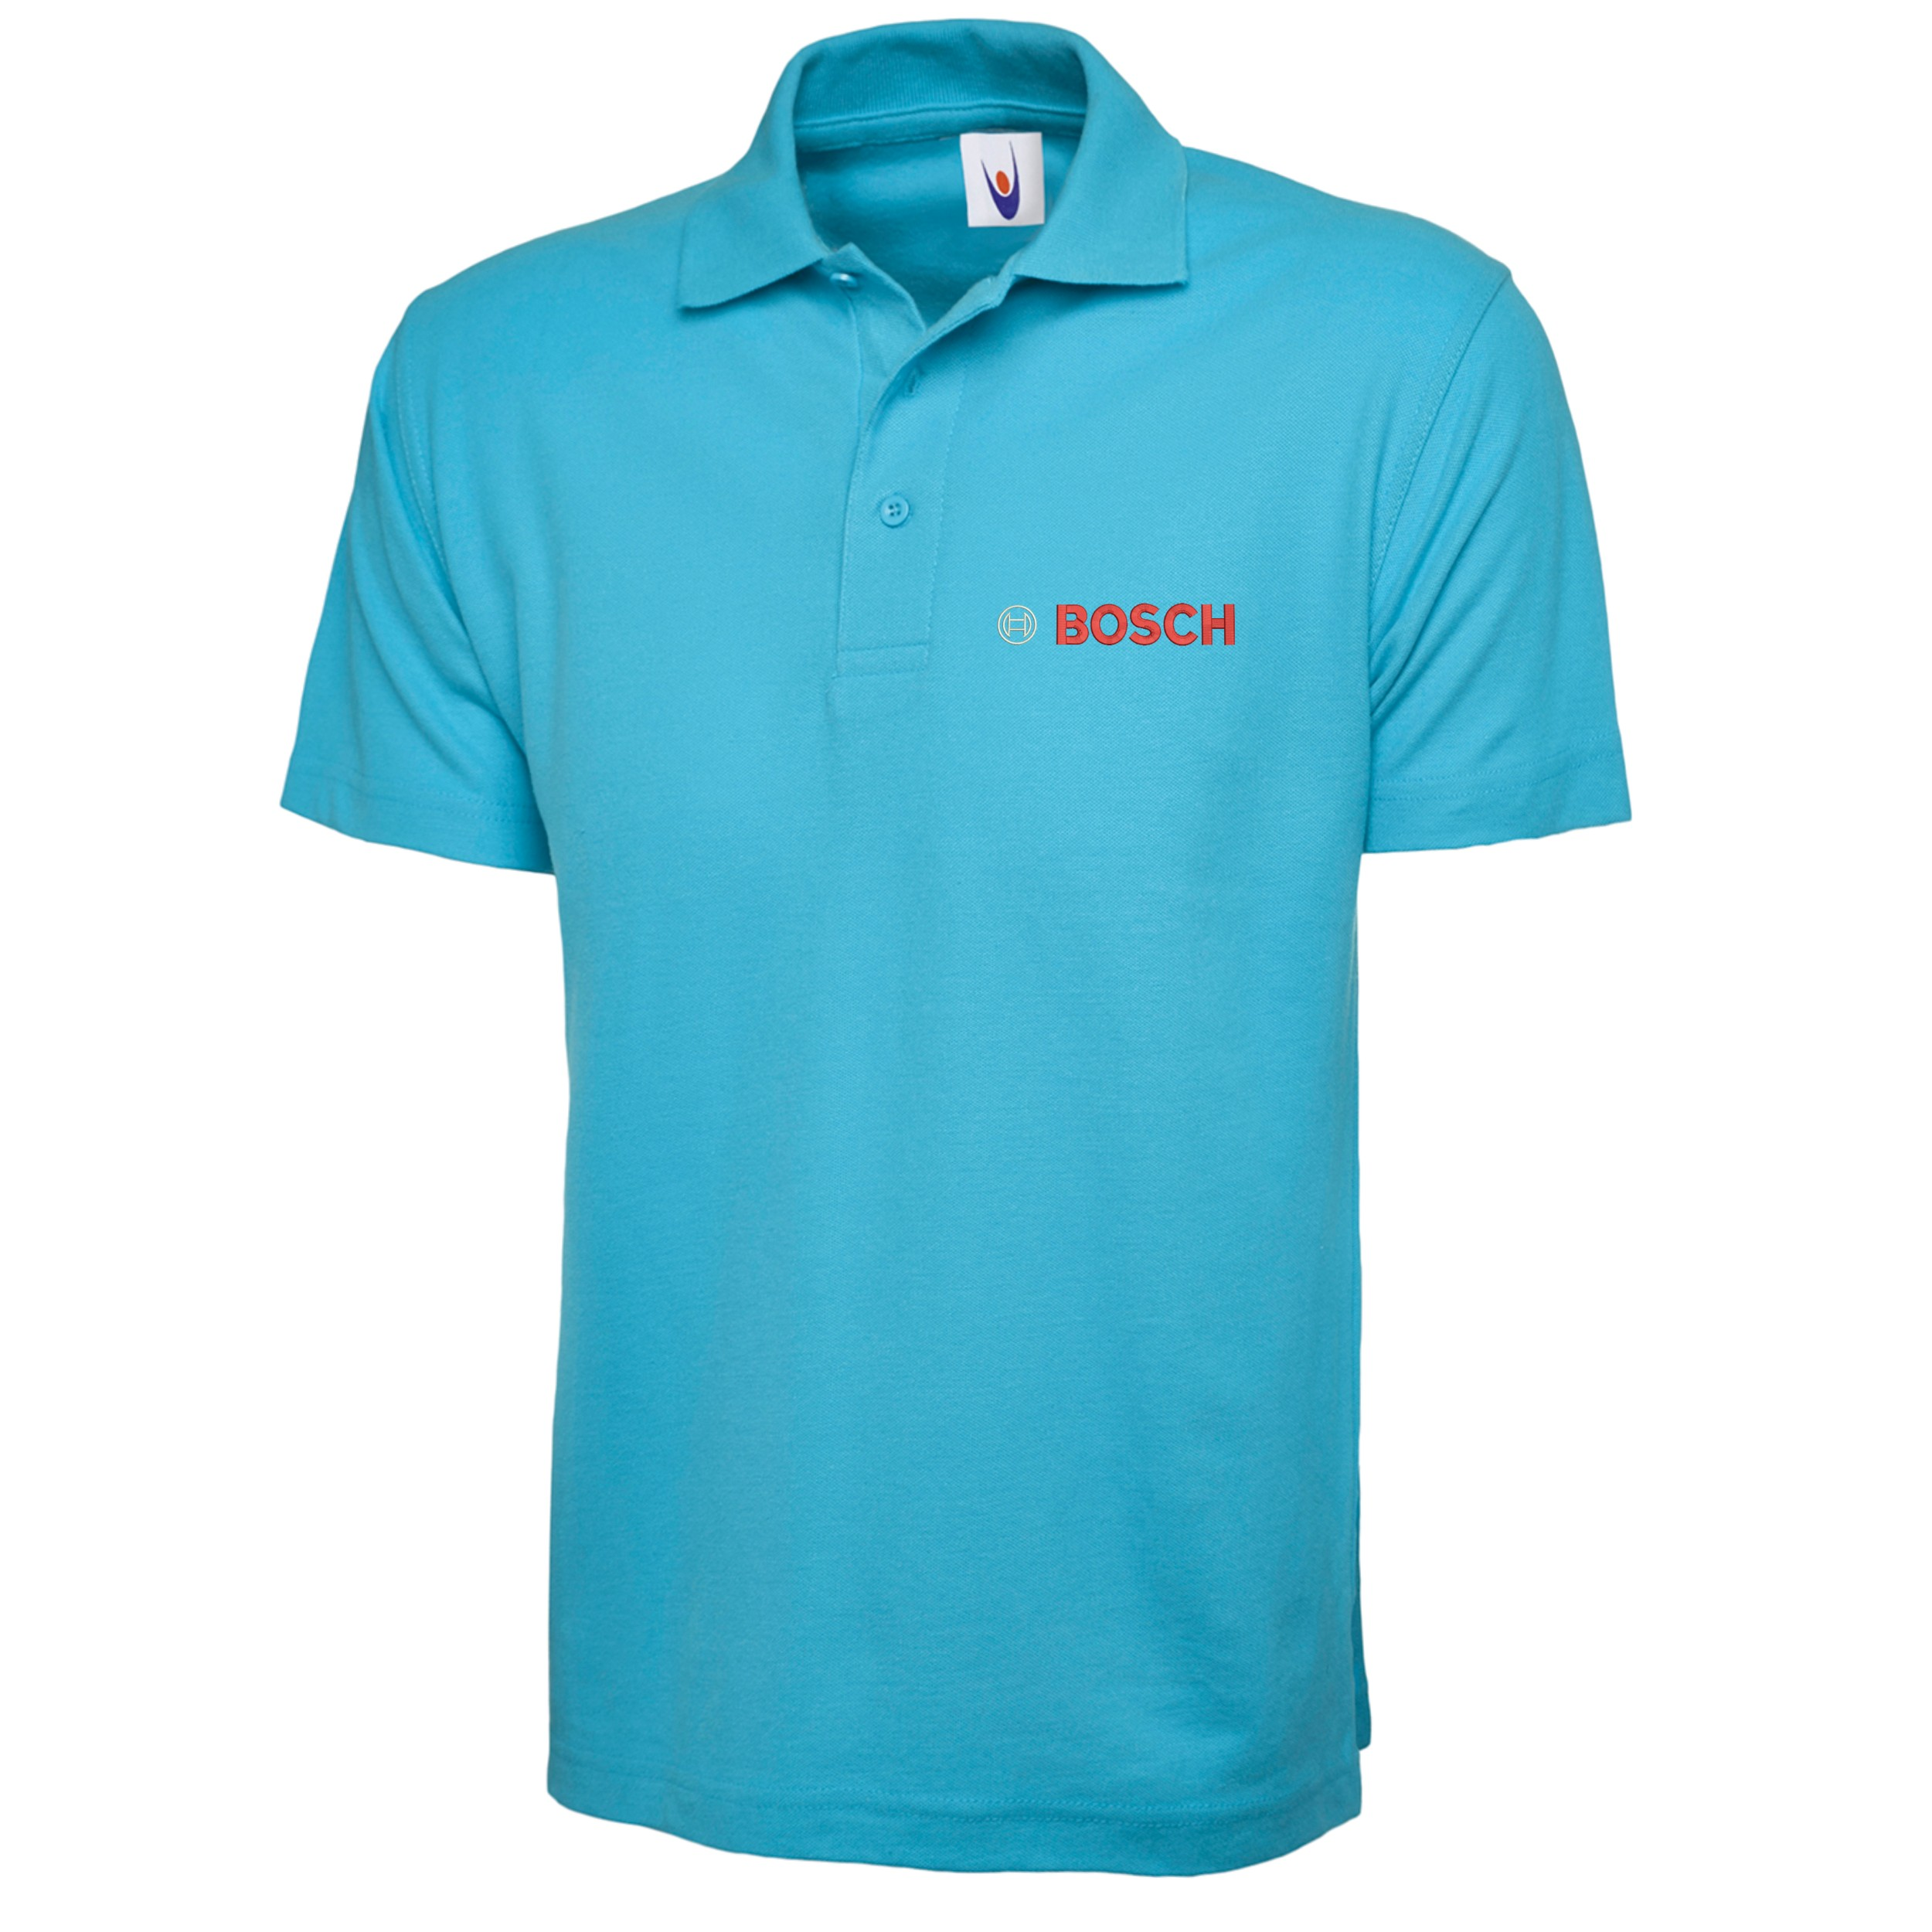 Embroidered bosch logo polo shirt workwear uniform for Embroidered logos on shirts